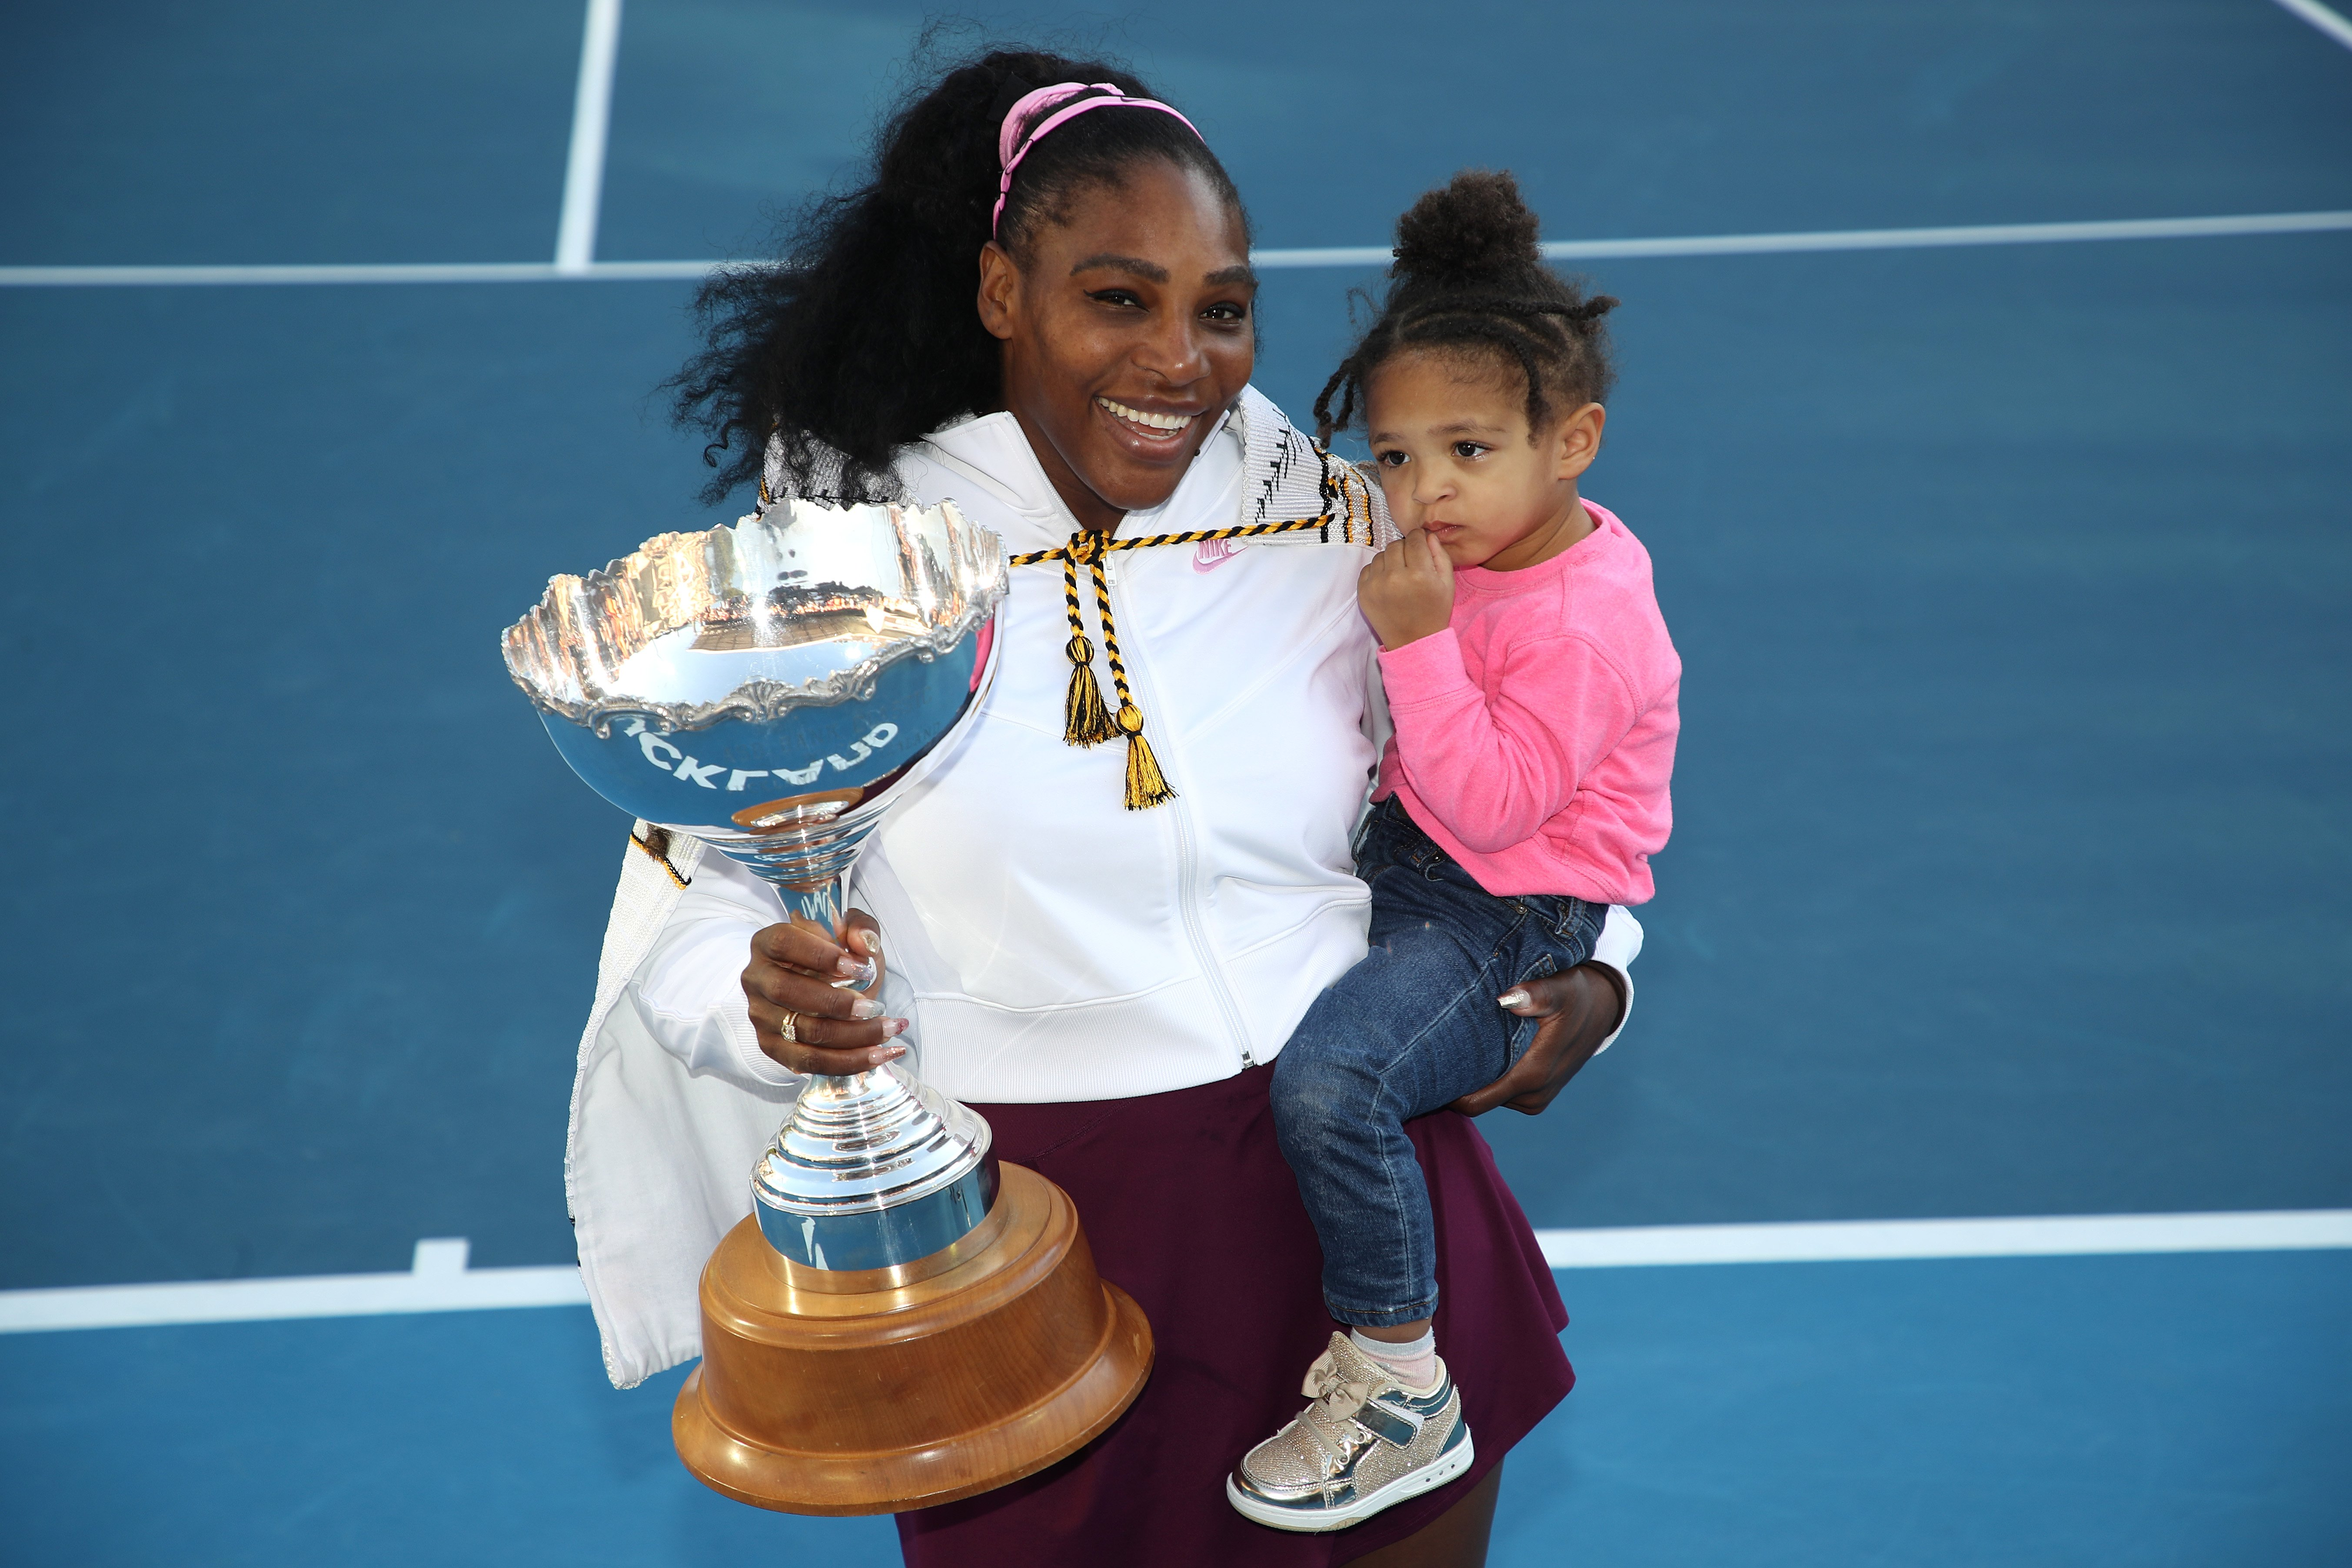 Serena Williams and her daughter Alexis Olympia at ASB Tennis Centre, 2020 in New Zealand | Source: Getty Images